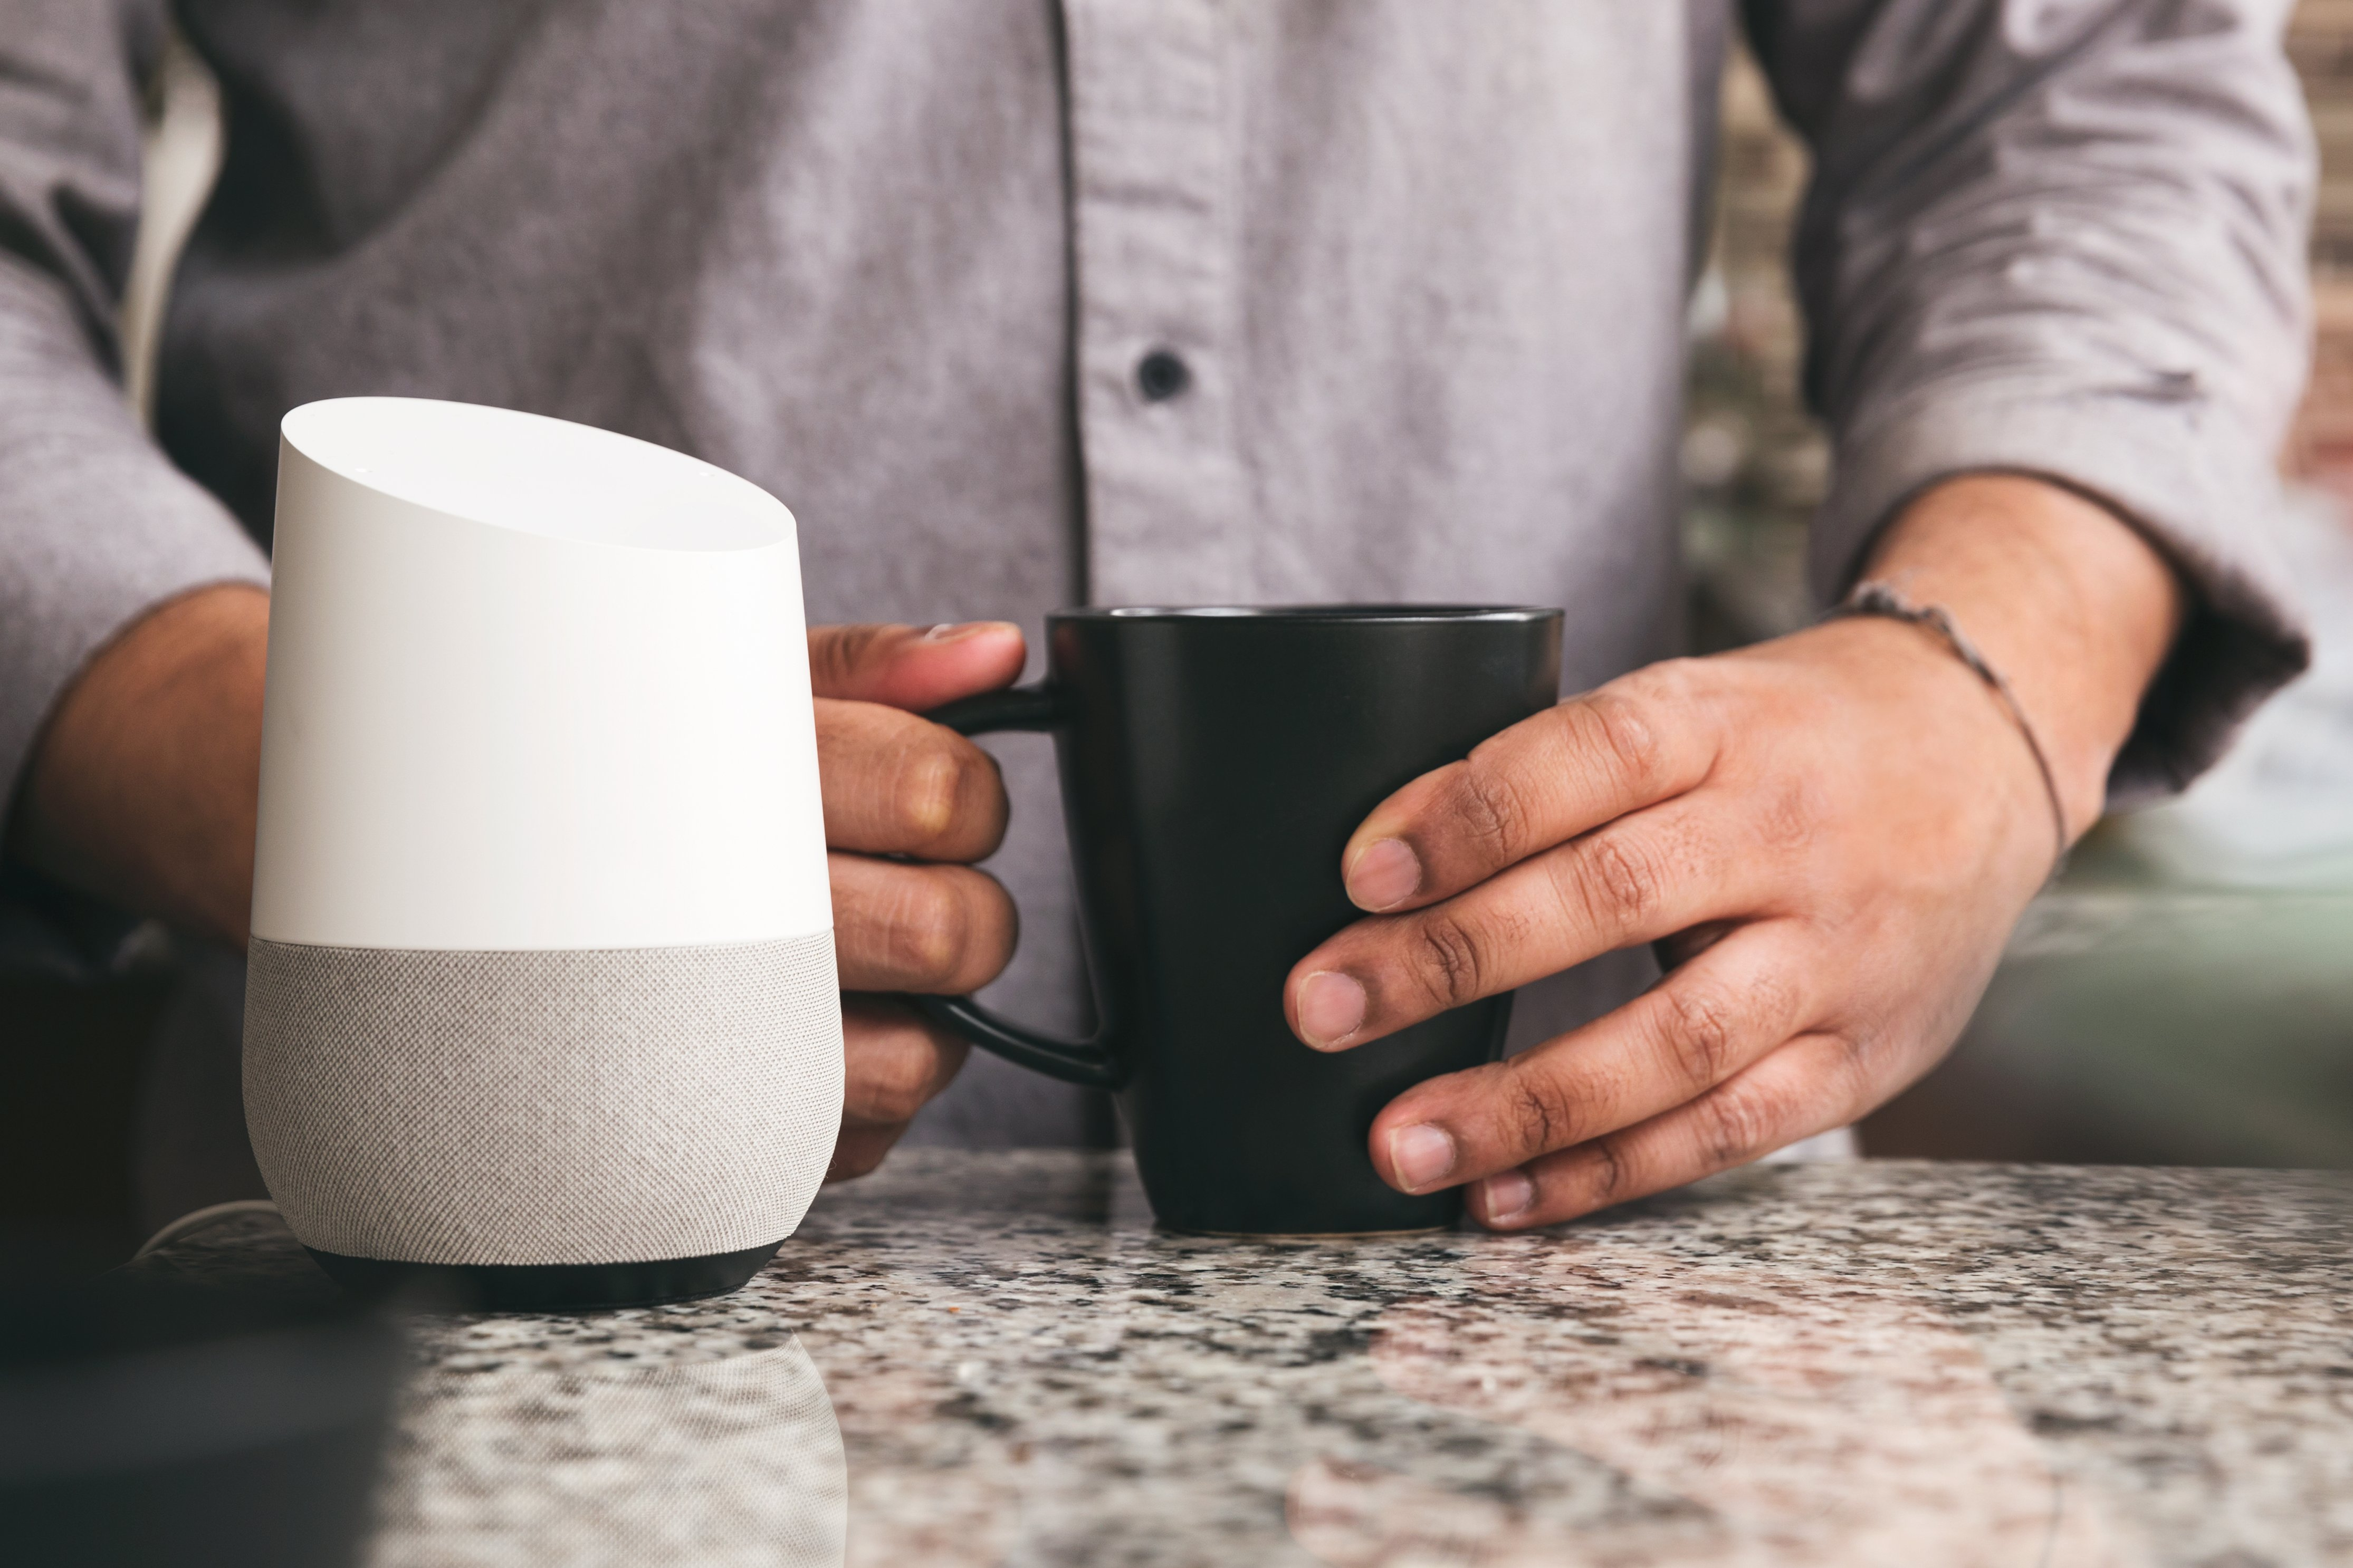 a person using a smart speaker